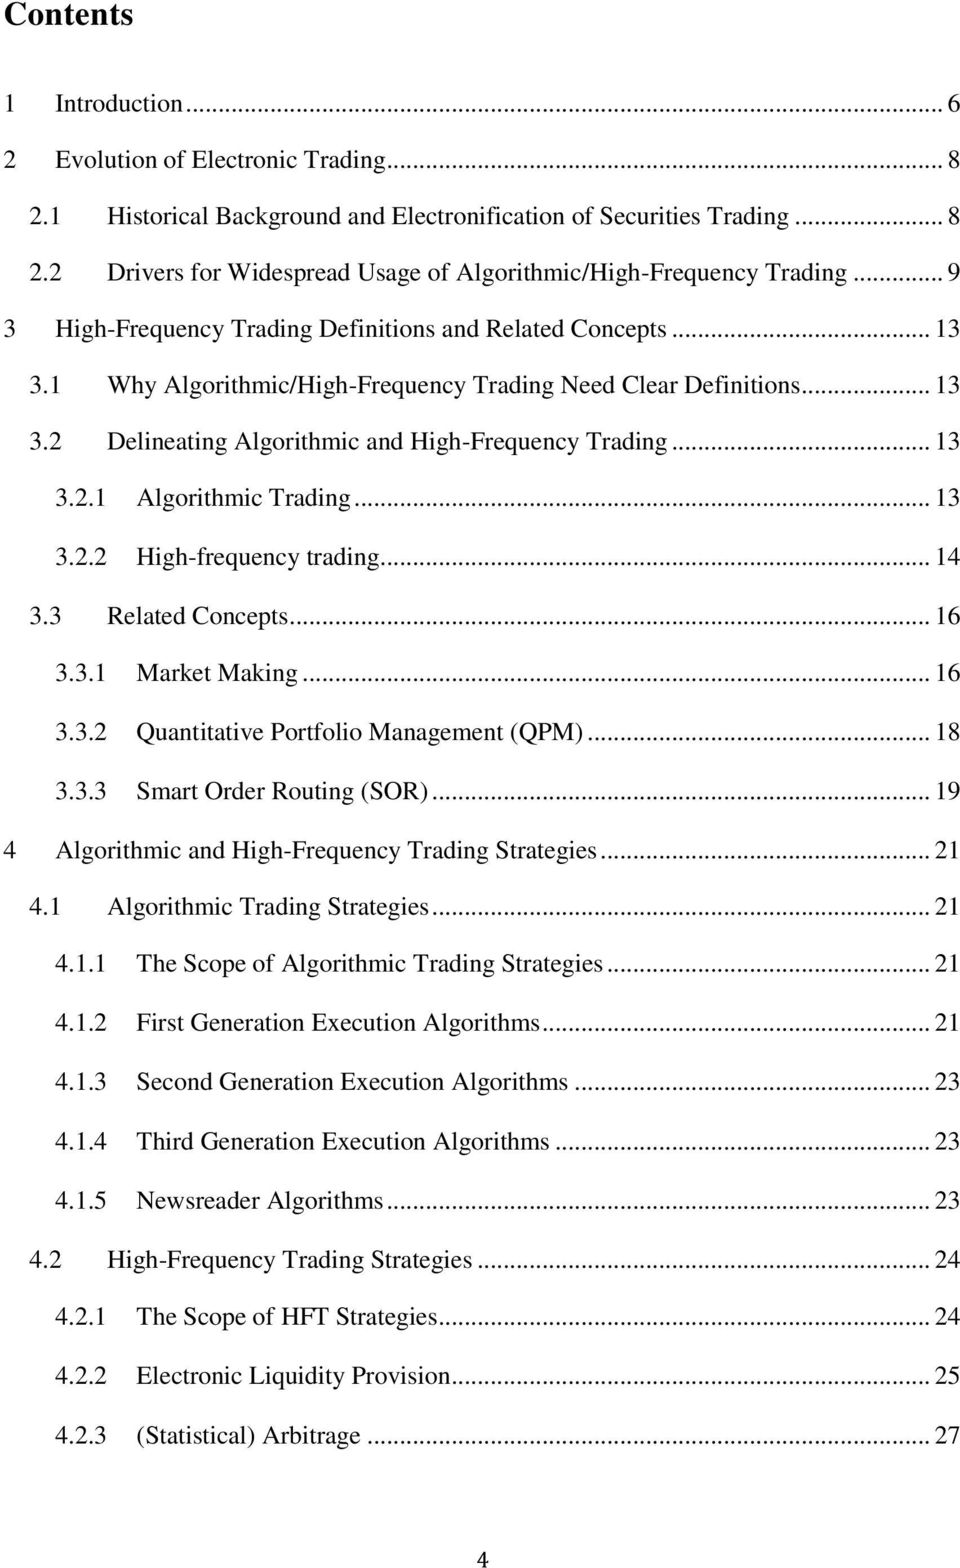 .. 13 3.2.1 Algorithmic Trading... 13 3.2.2 High-frequency trading... 14 3.3 Related Concepts... 16 3.3.1 Market Making... 16 3.3.2 Quantitative Portfolio Management (QPM)... 18 3.3.3 Smart Order Routing (SOR).